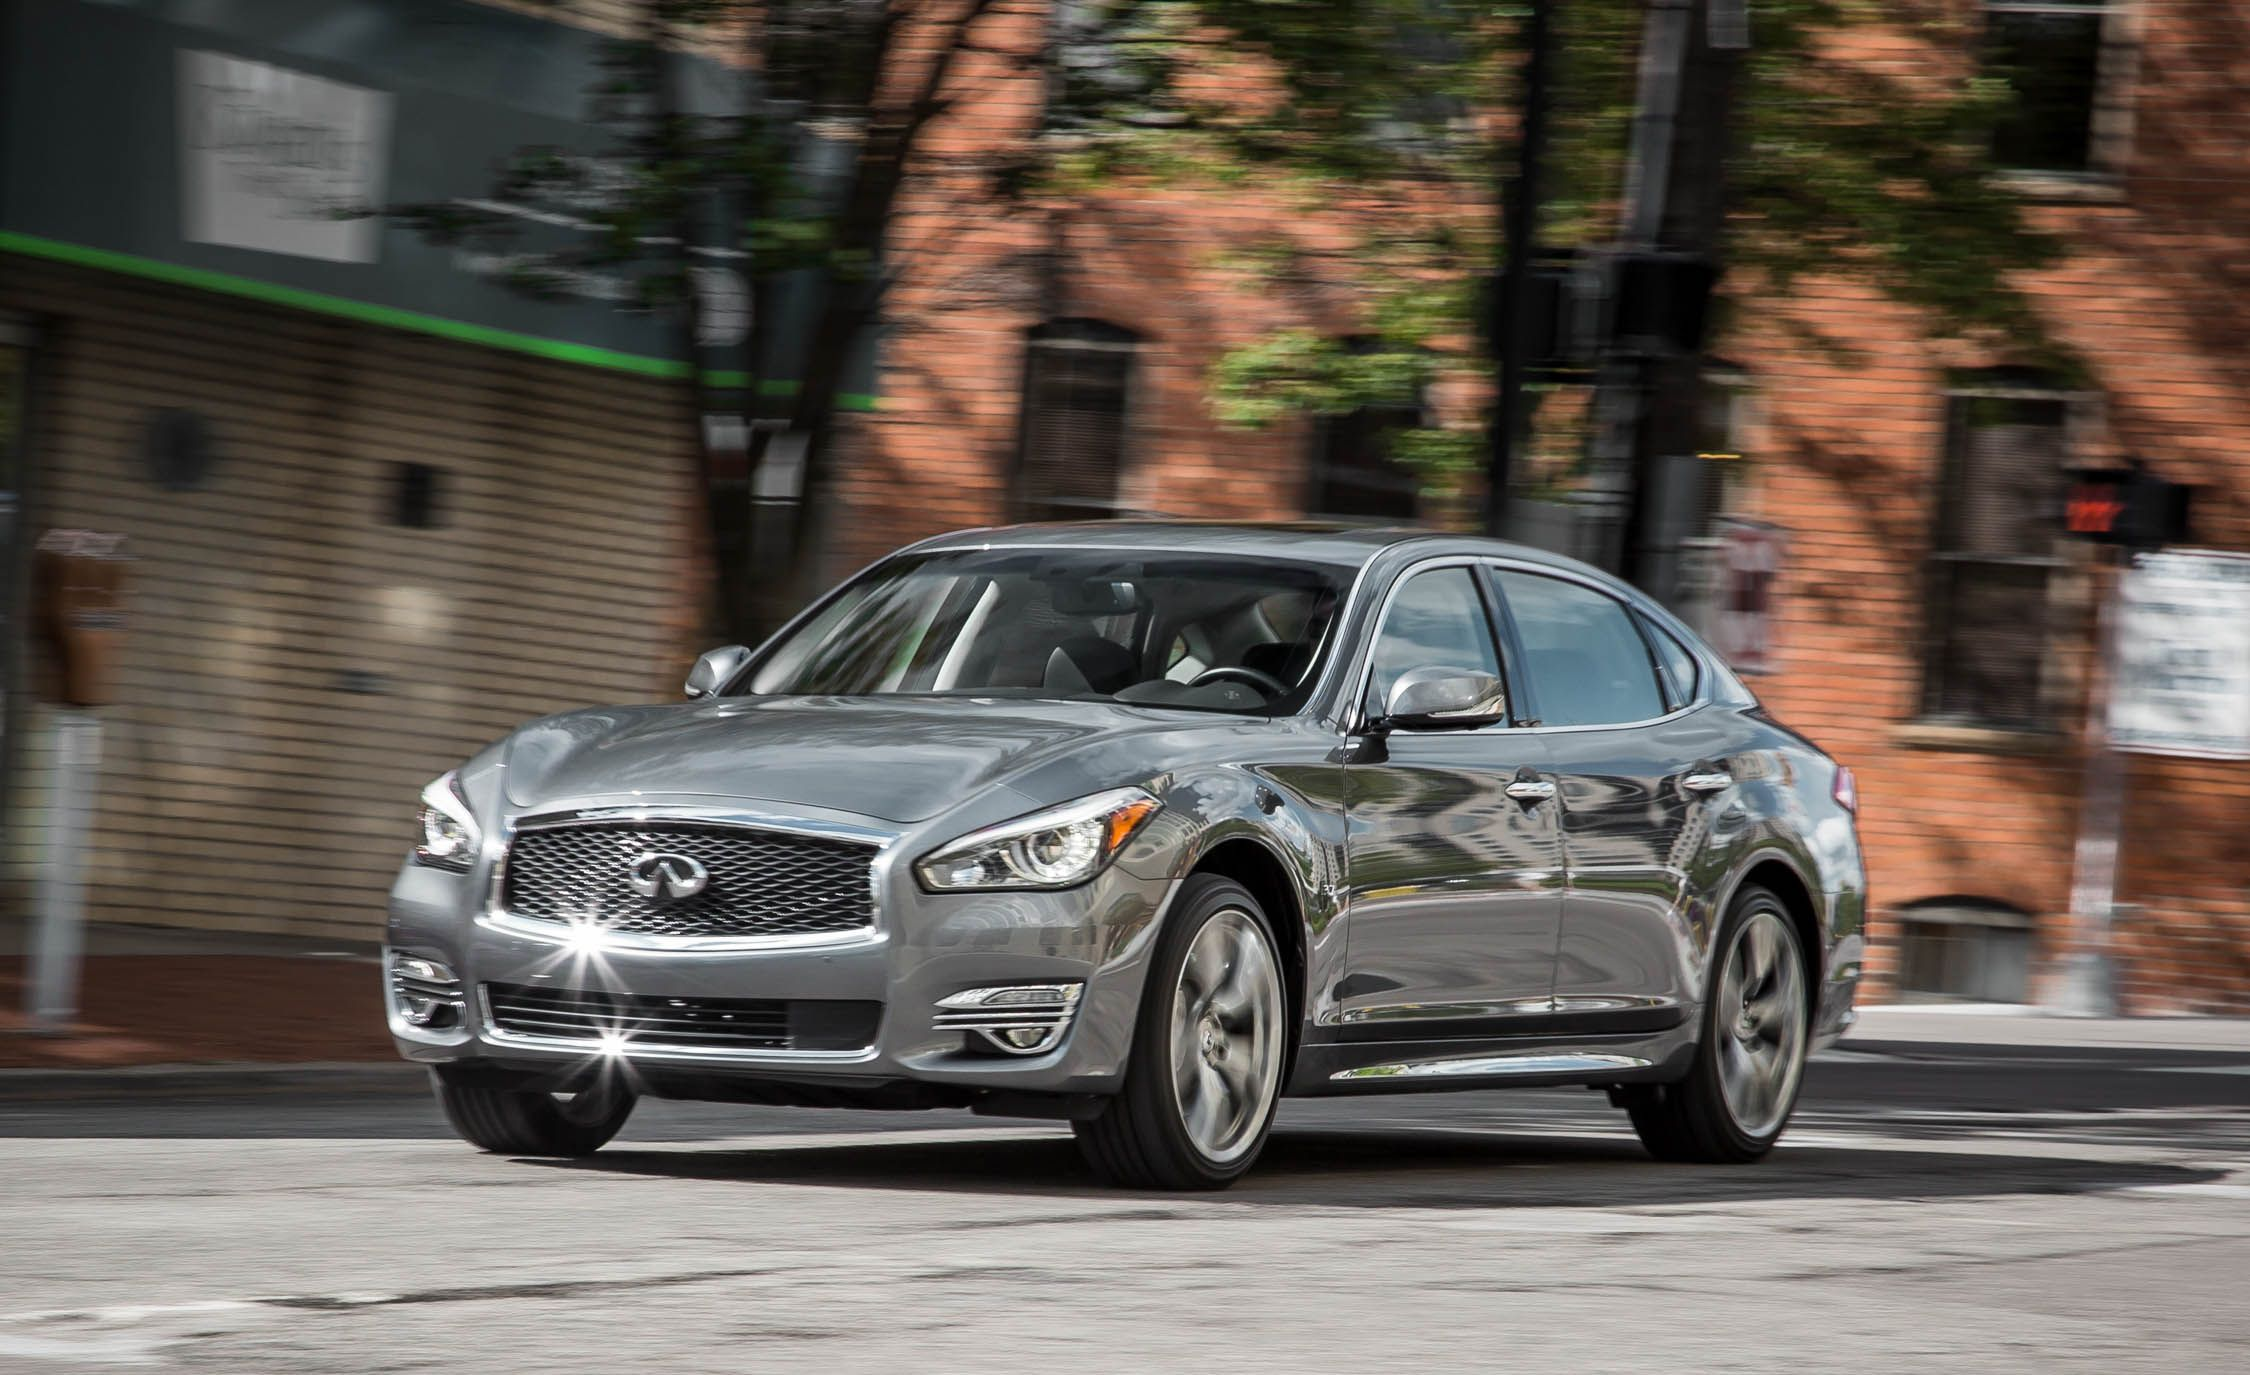 2019 Infiniti Q70 Reviews Price Photos And Specs Car Driver